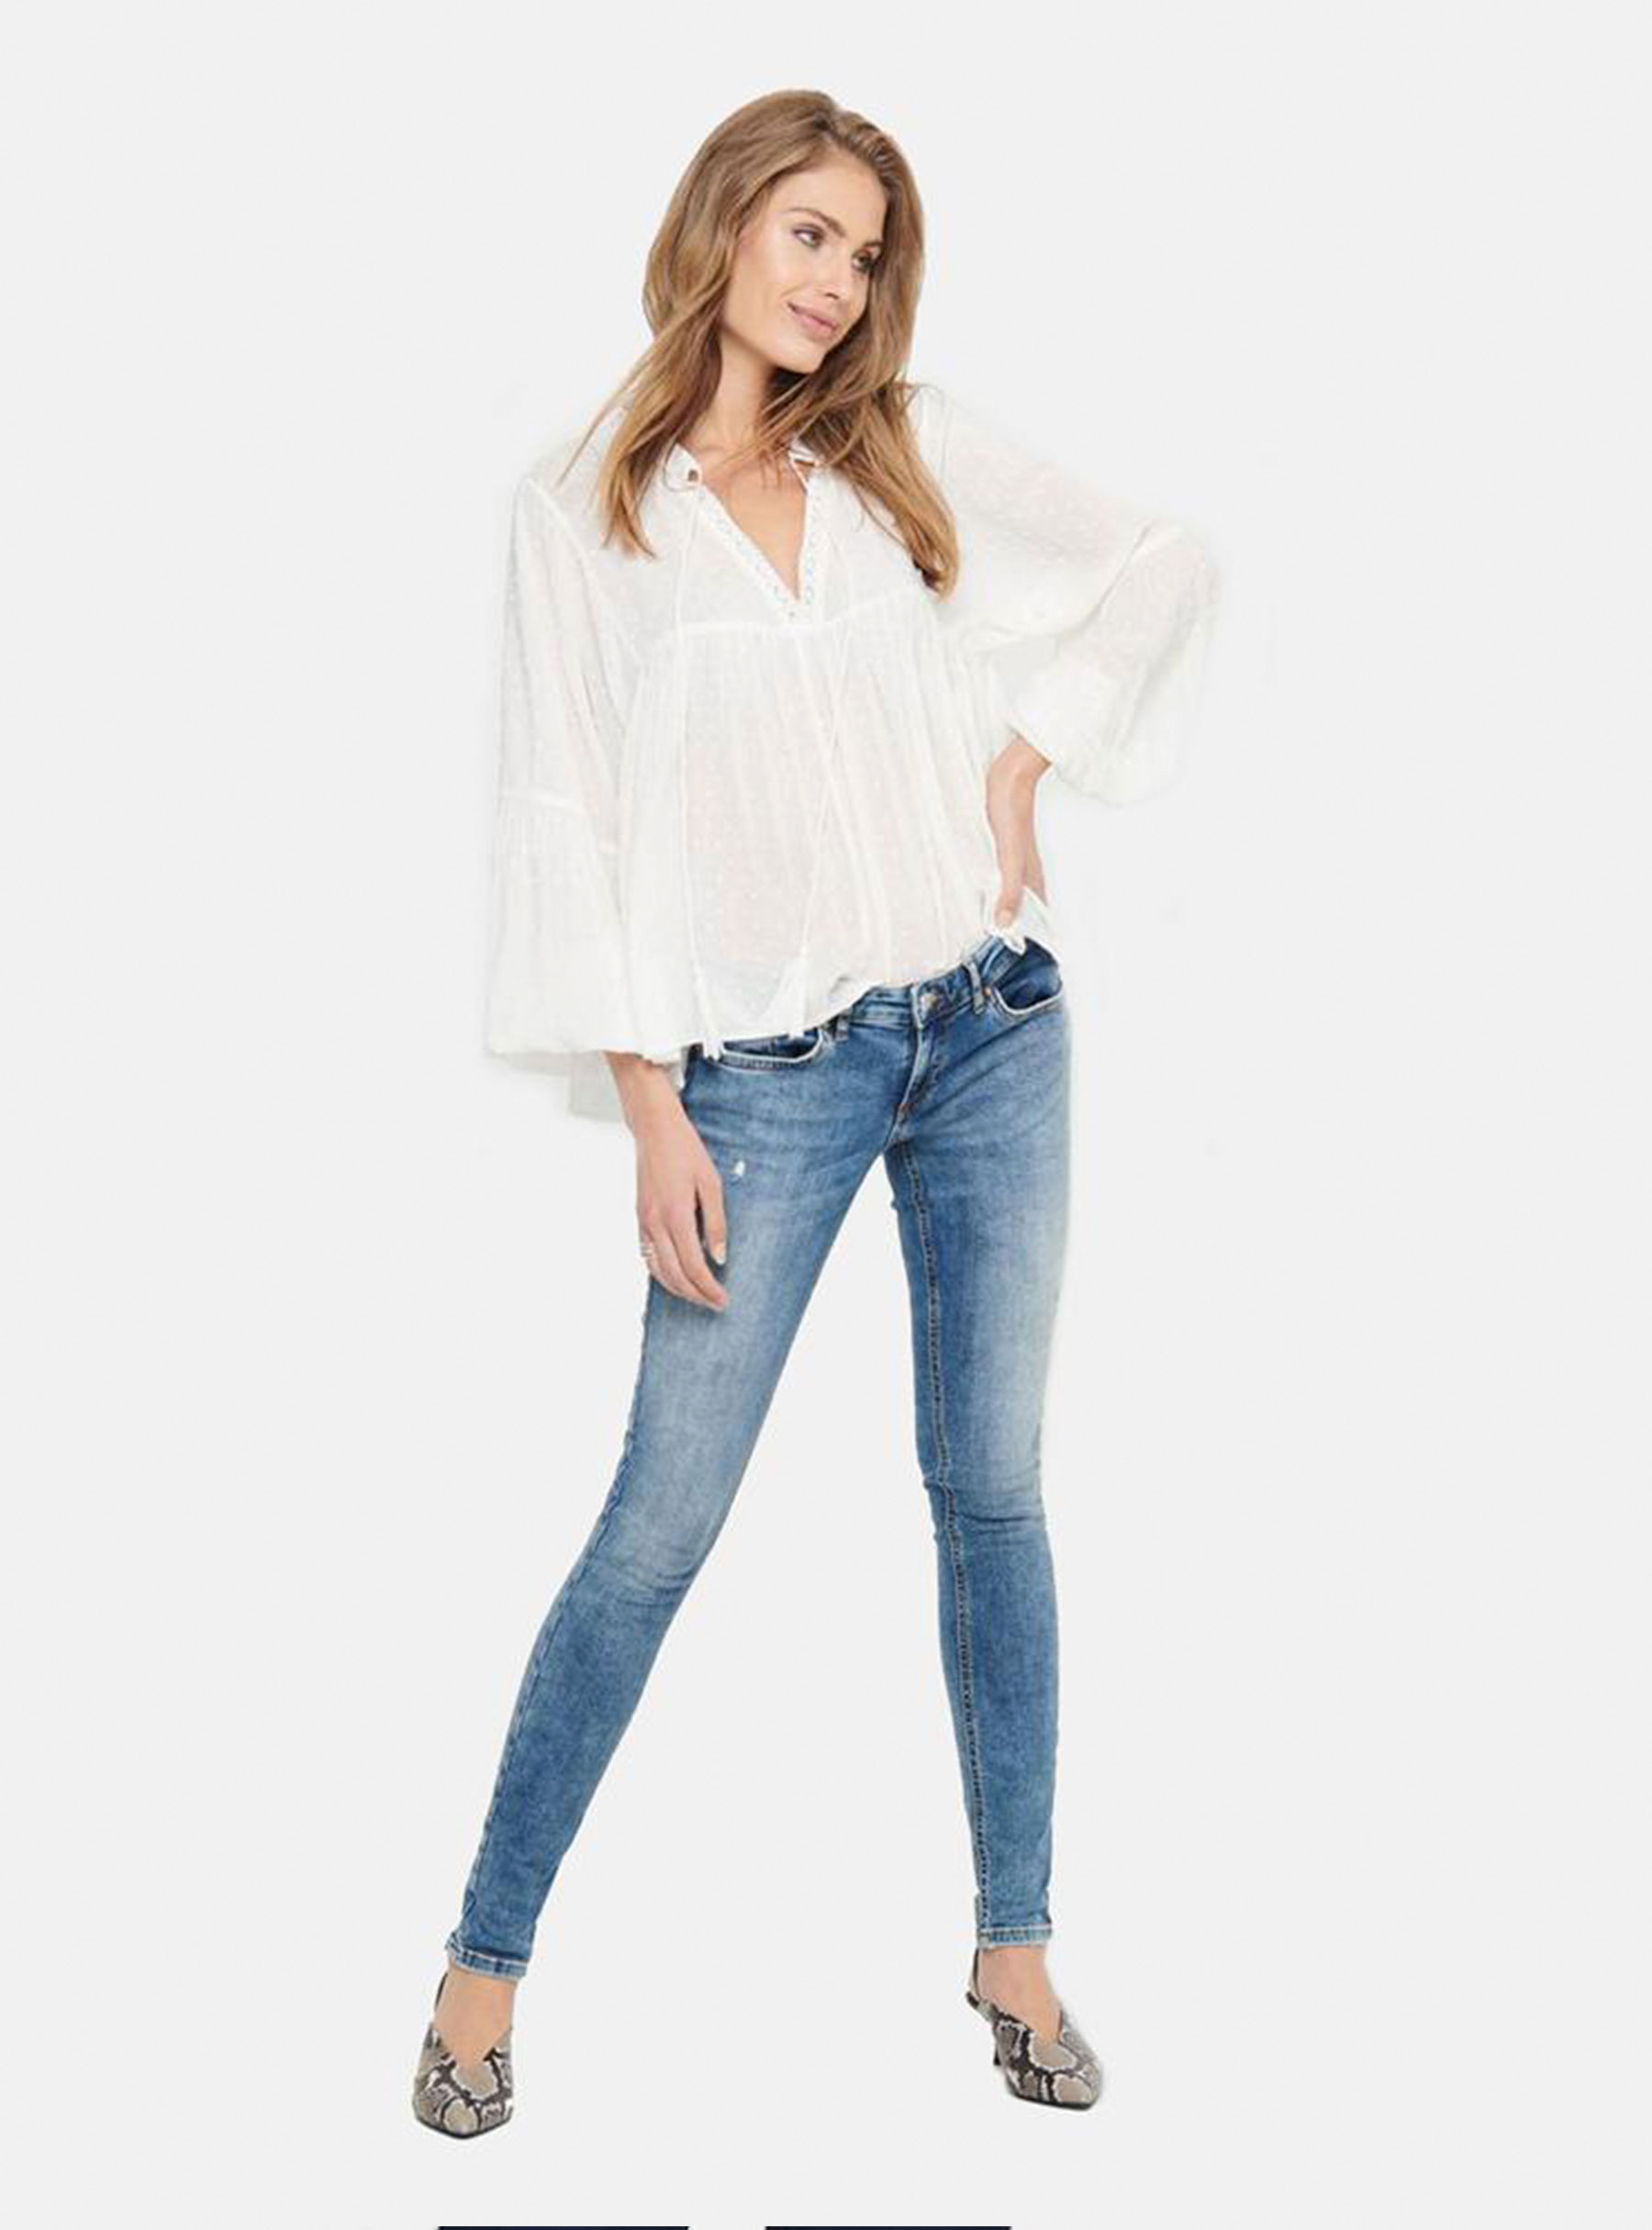 ONLY JEANS 319 hrk -50%